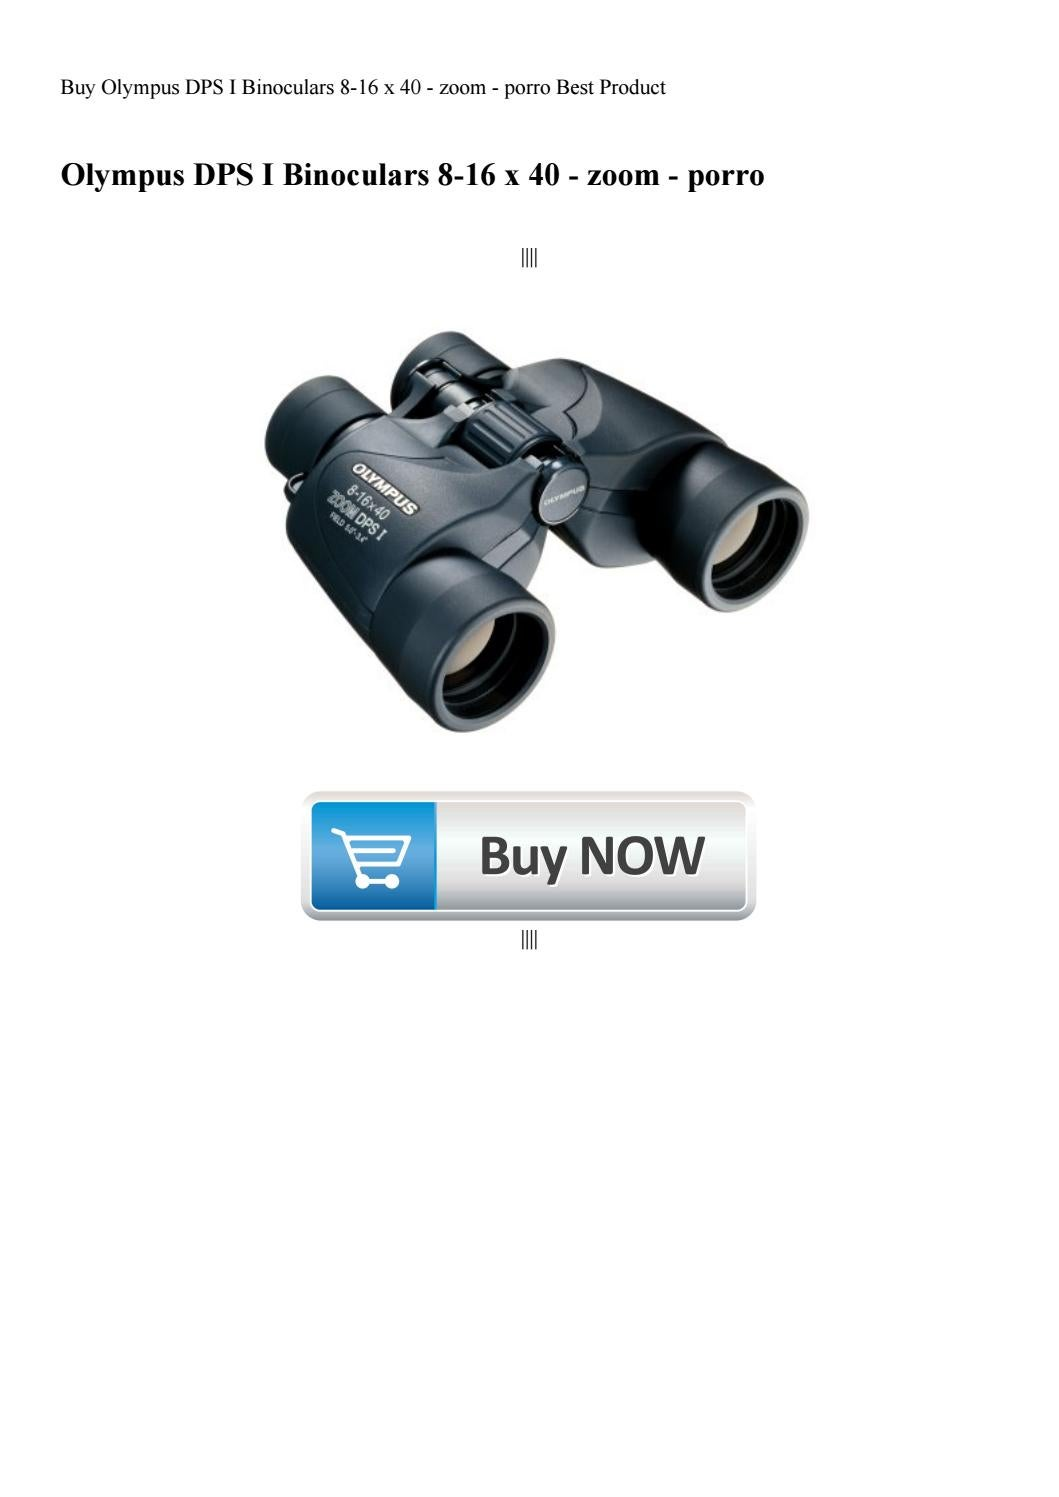 Buy Olympus Dps I Binoculars 8 16 X 40 Zoom Porro Best Product By Xanderstrong77 Issuu